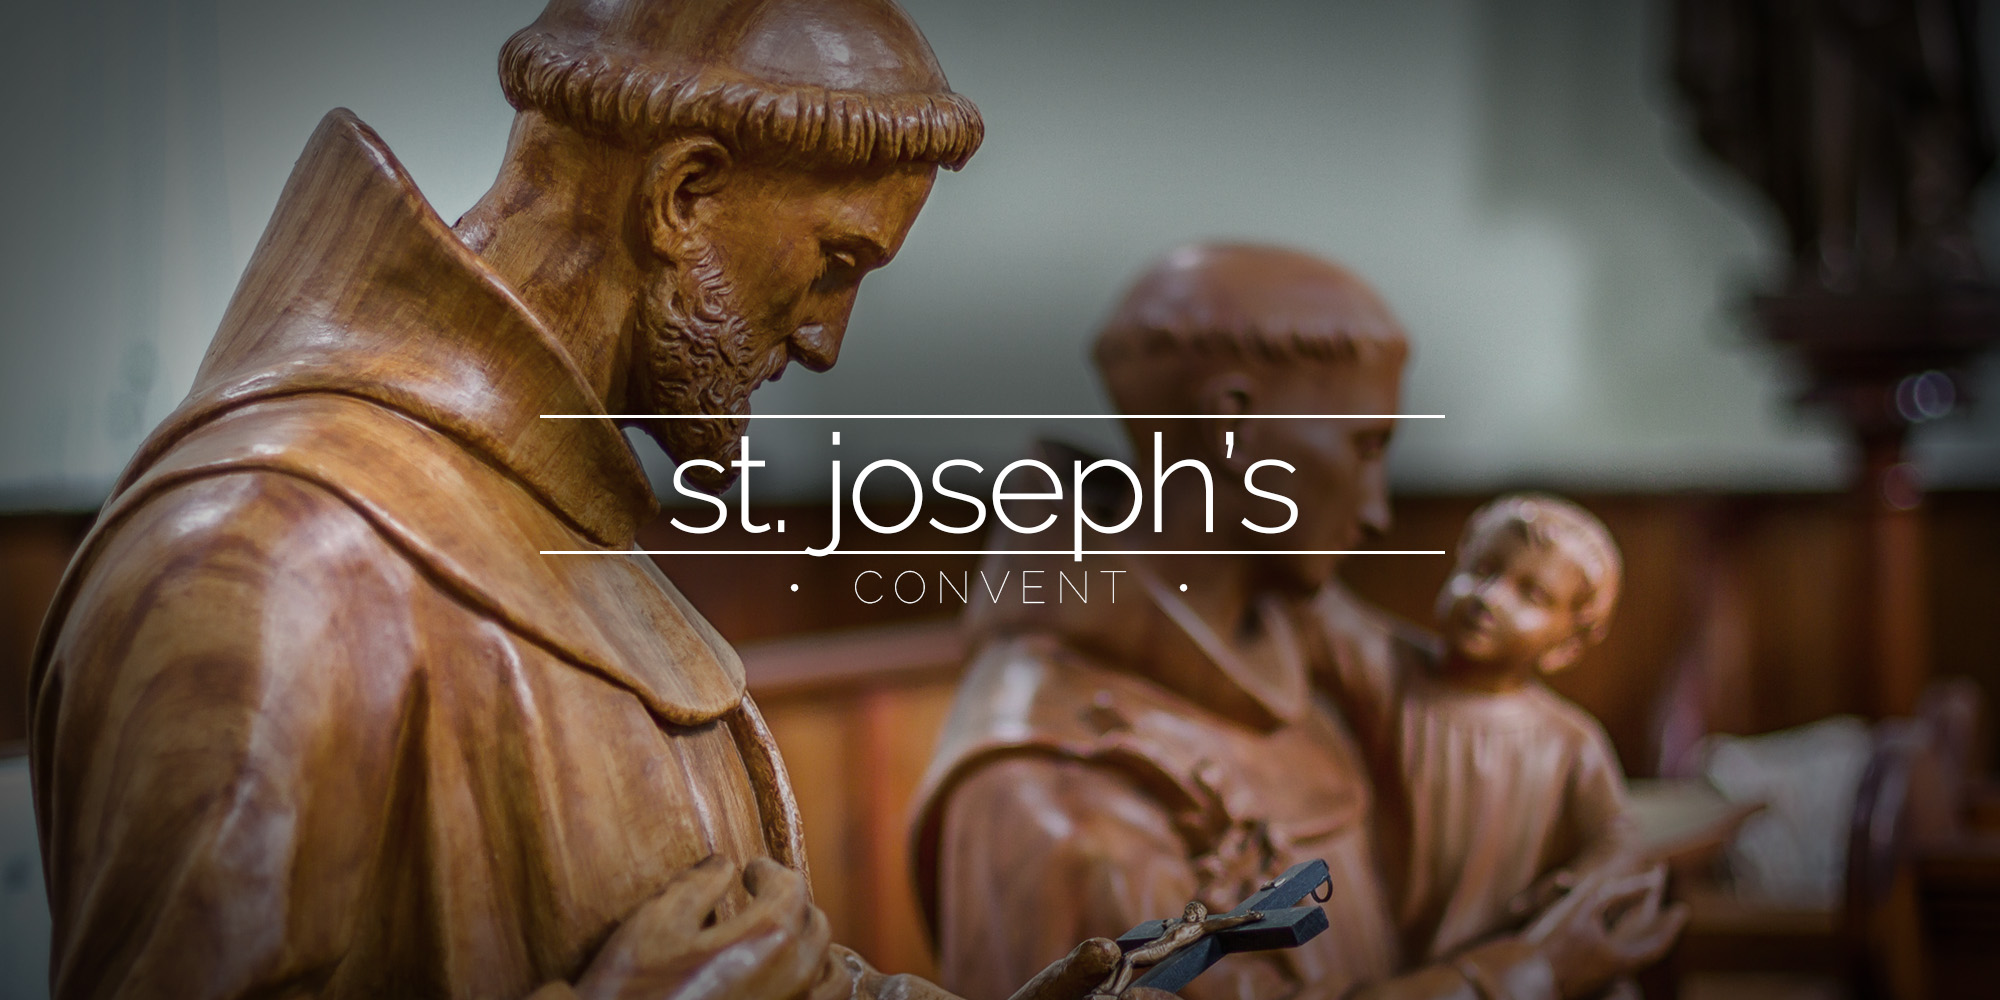 St Joseph's Convent, Order of the Poor Clares, York